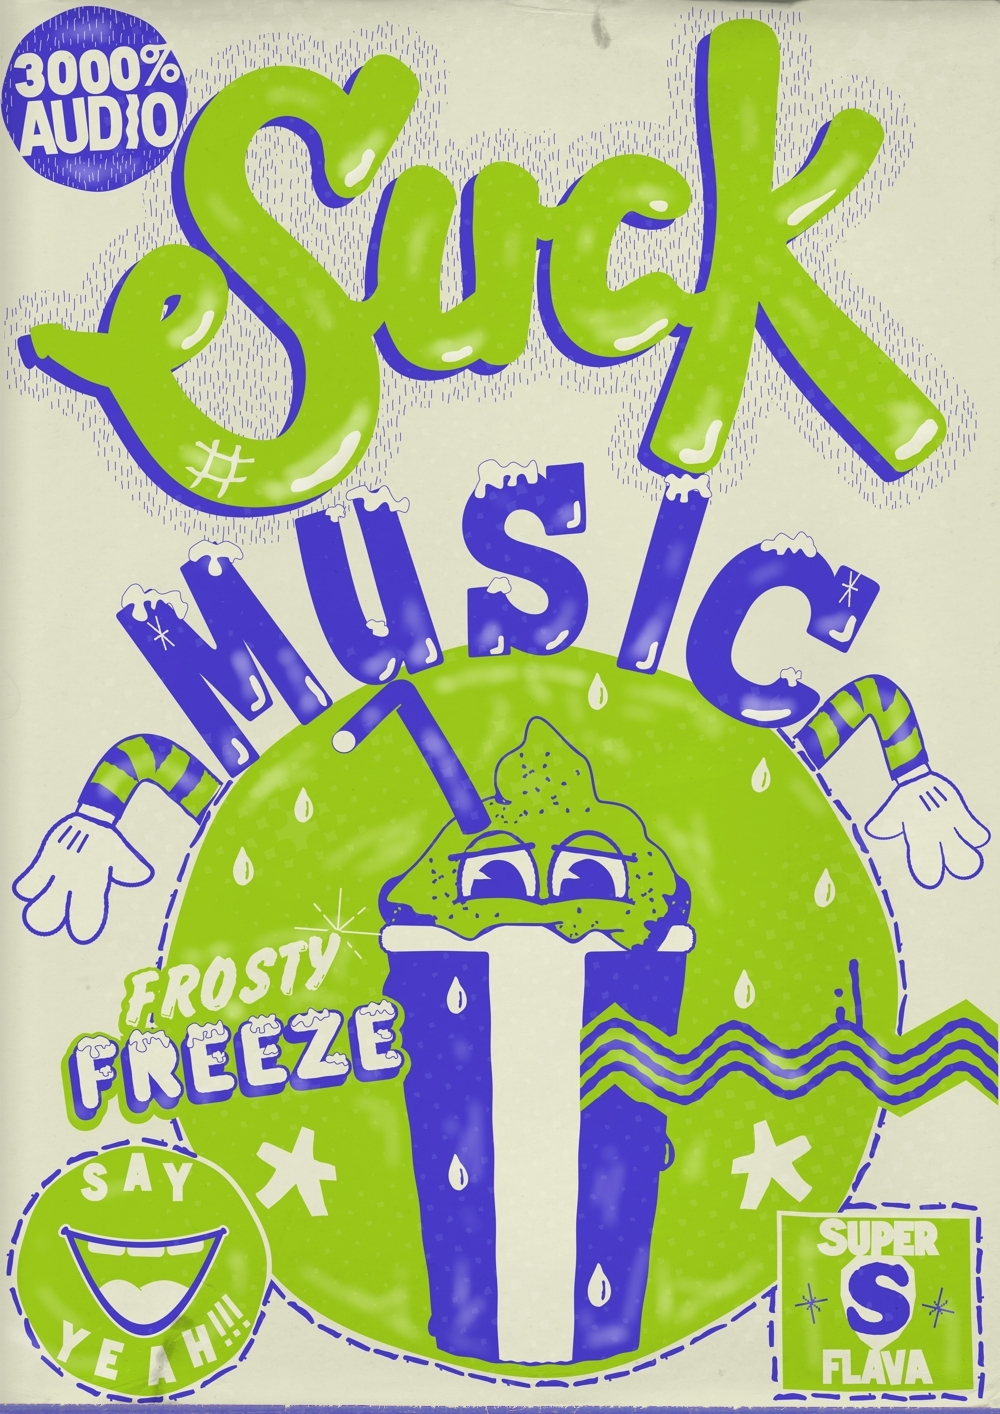 Suck Music Poster 2 - July 2011